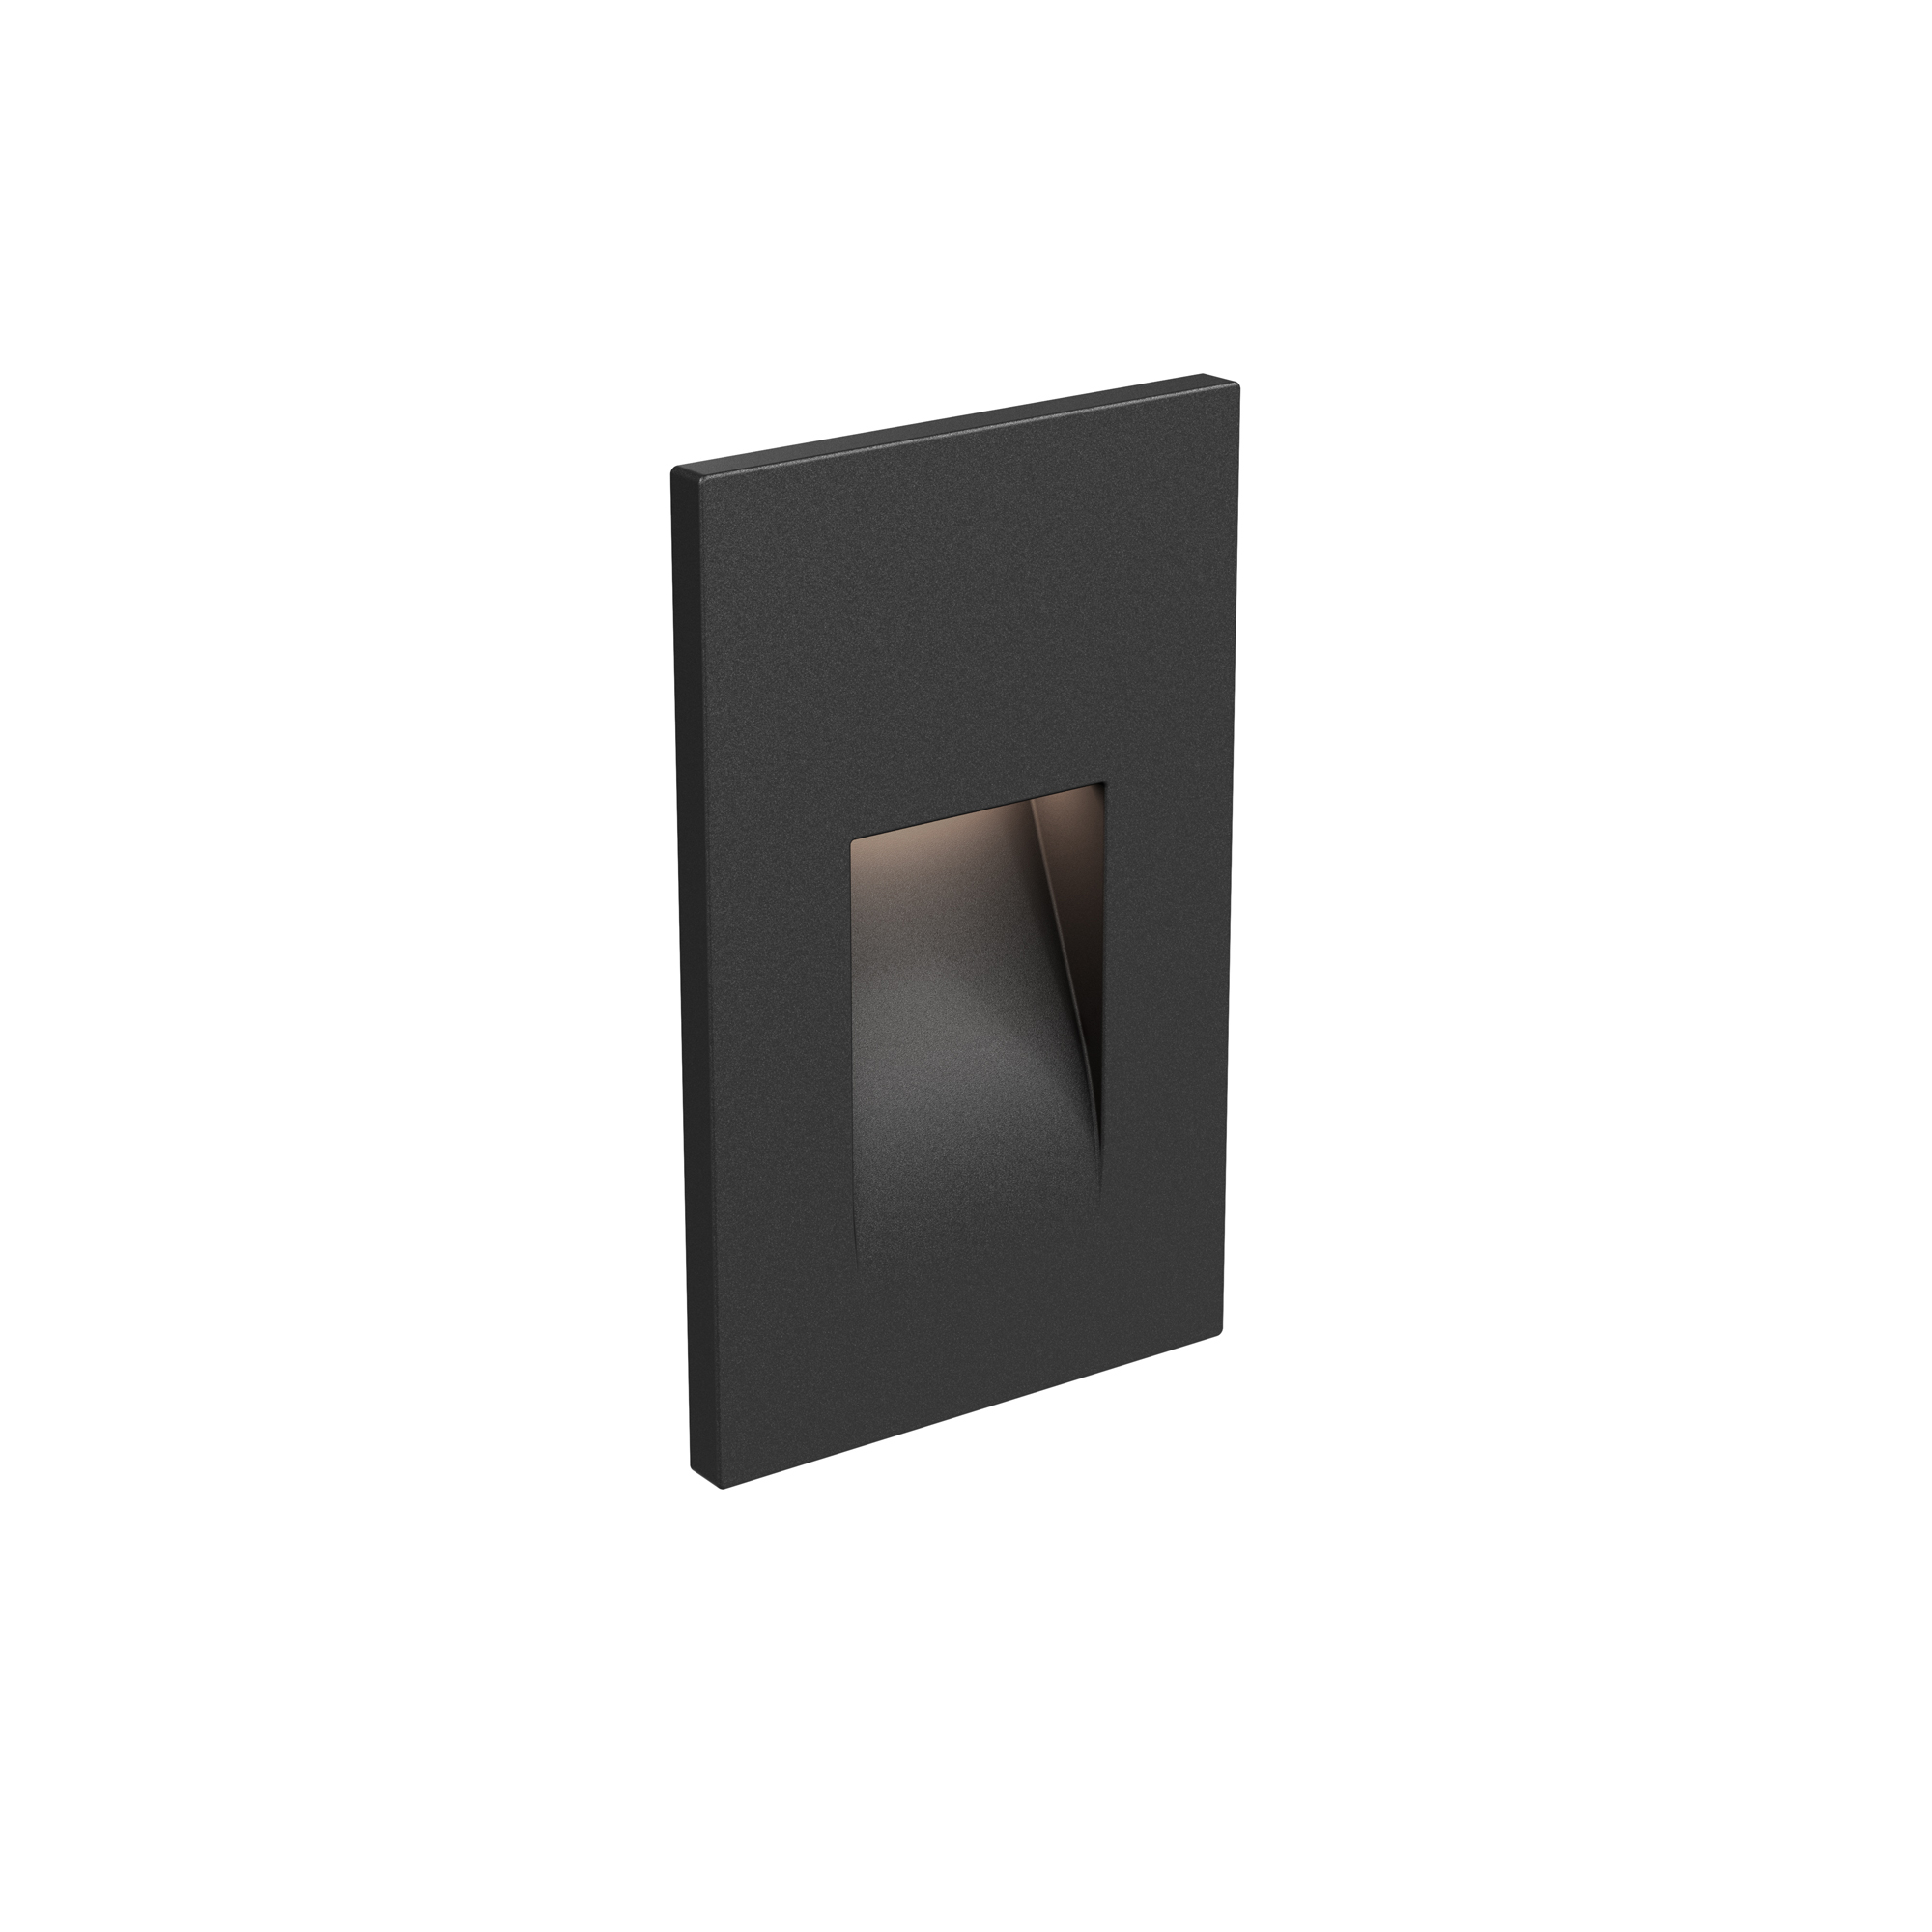 LEDSTEP002D - Recessed vertical LED step light